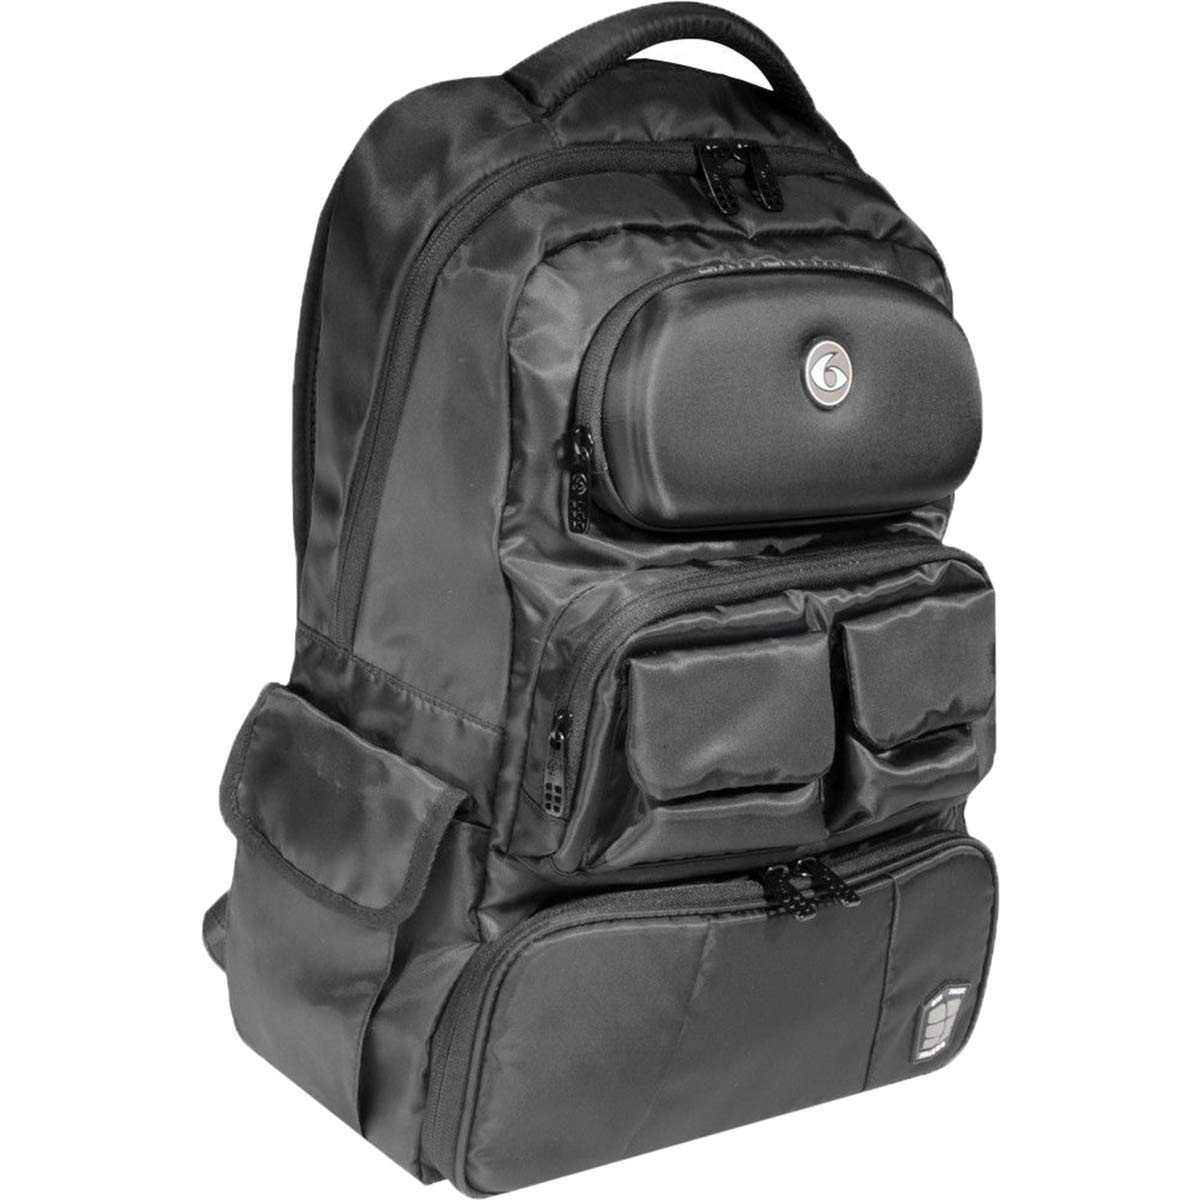 47f689adcbe4 Amazon.com  6 Pack Fitness Mach 6 Athletic Backpack - Stealth Black  Sports    Outdoors